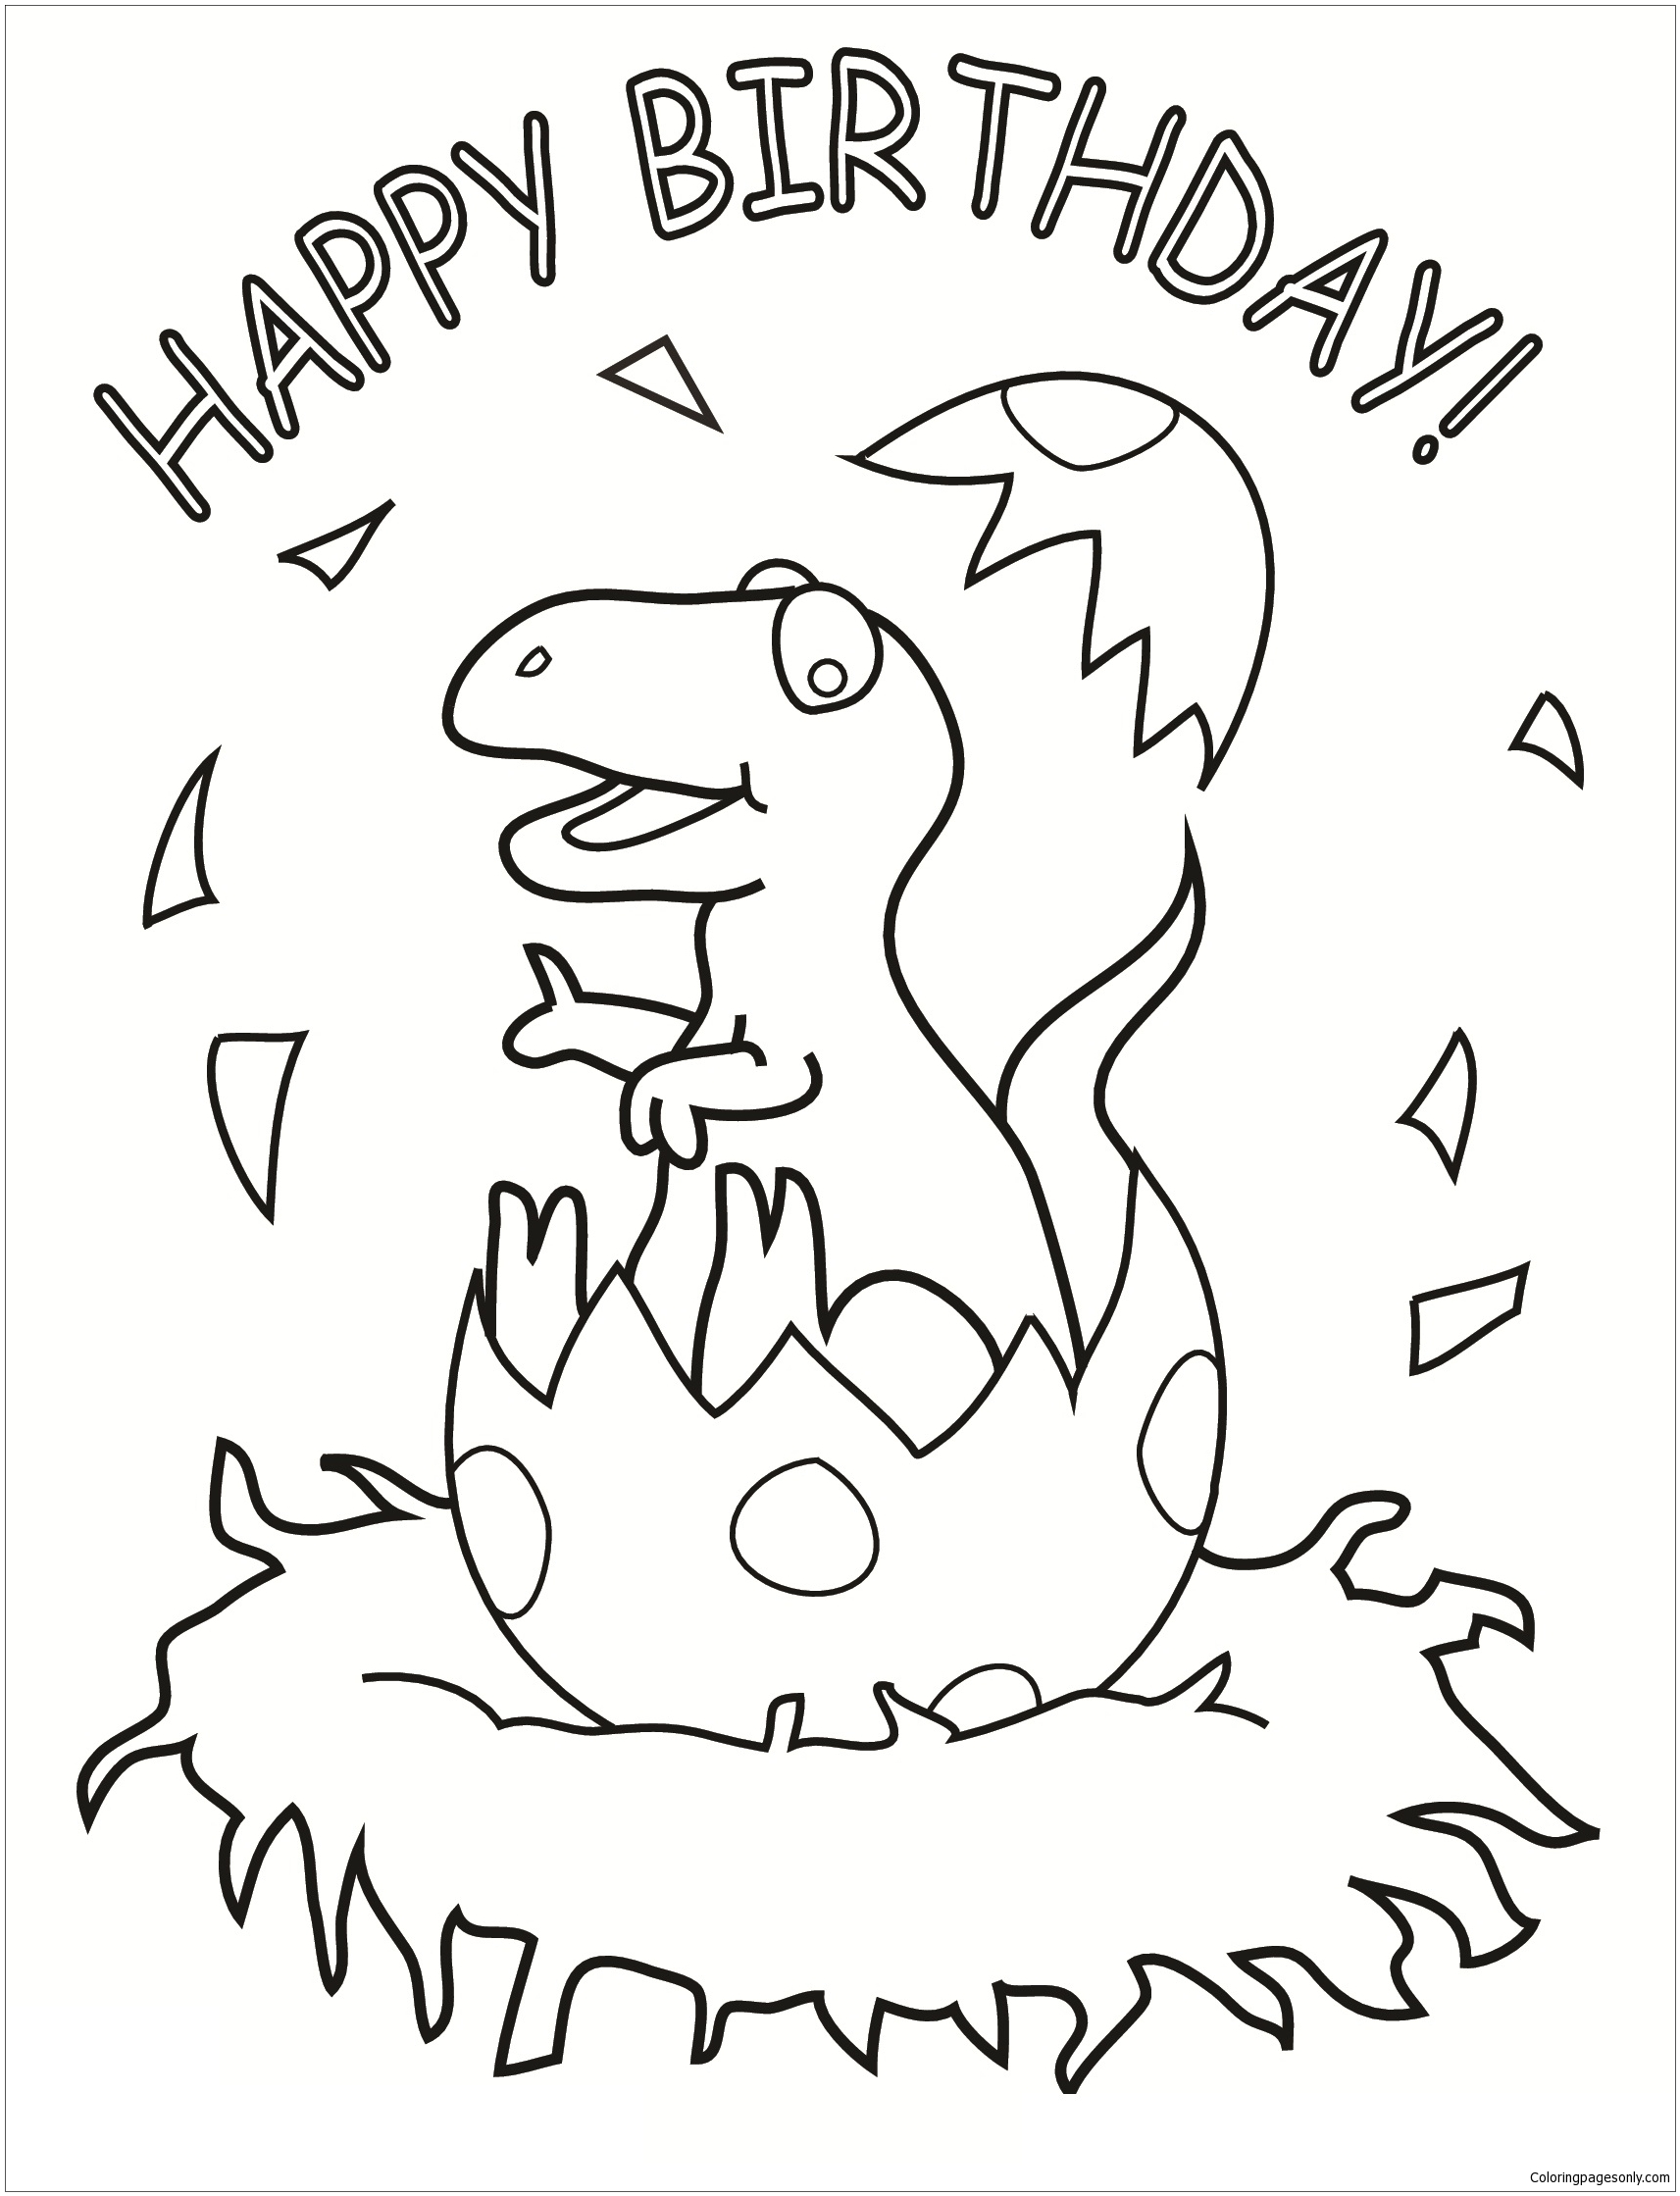 Happy Birthday Dinosaur Coloring Page